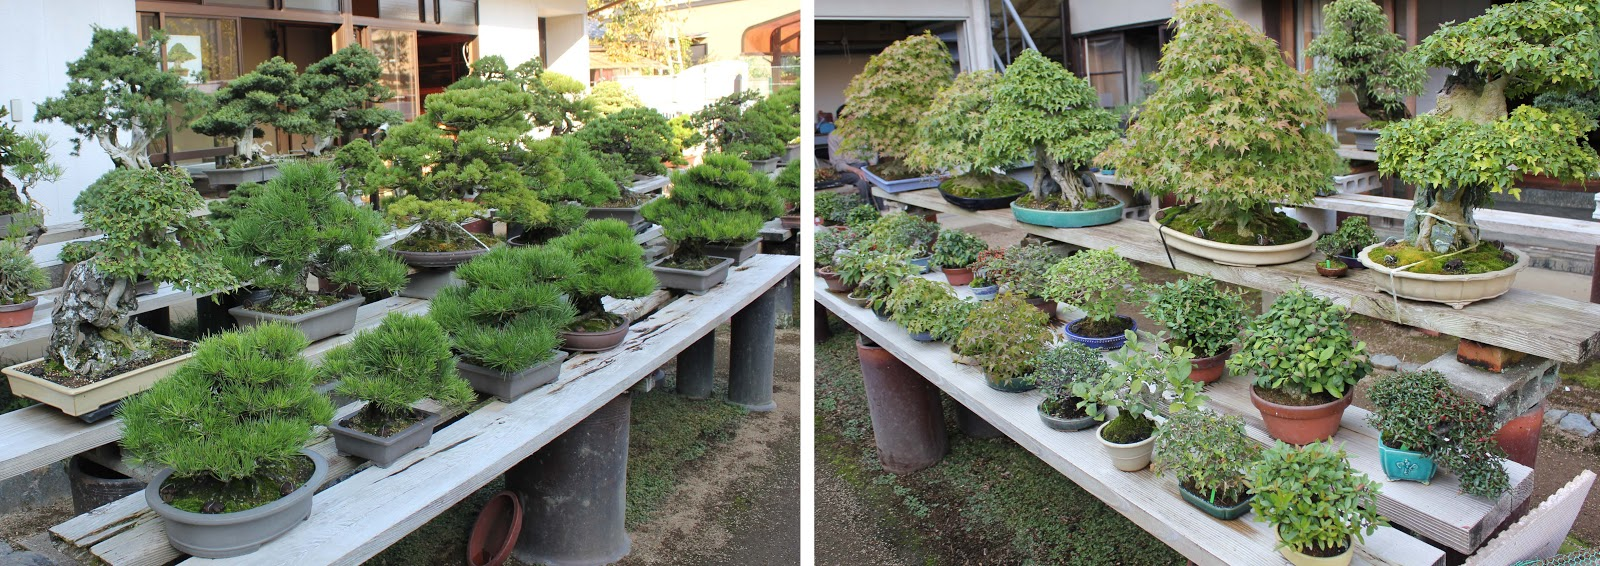 Kigawa39s Bonsai Blog Shosei En Bonsai Nursery Kyoto